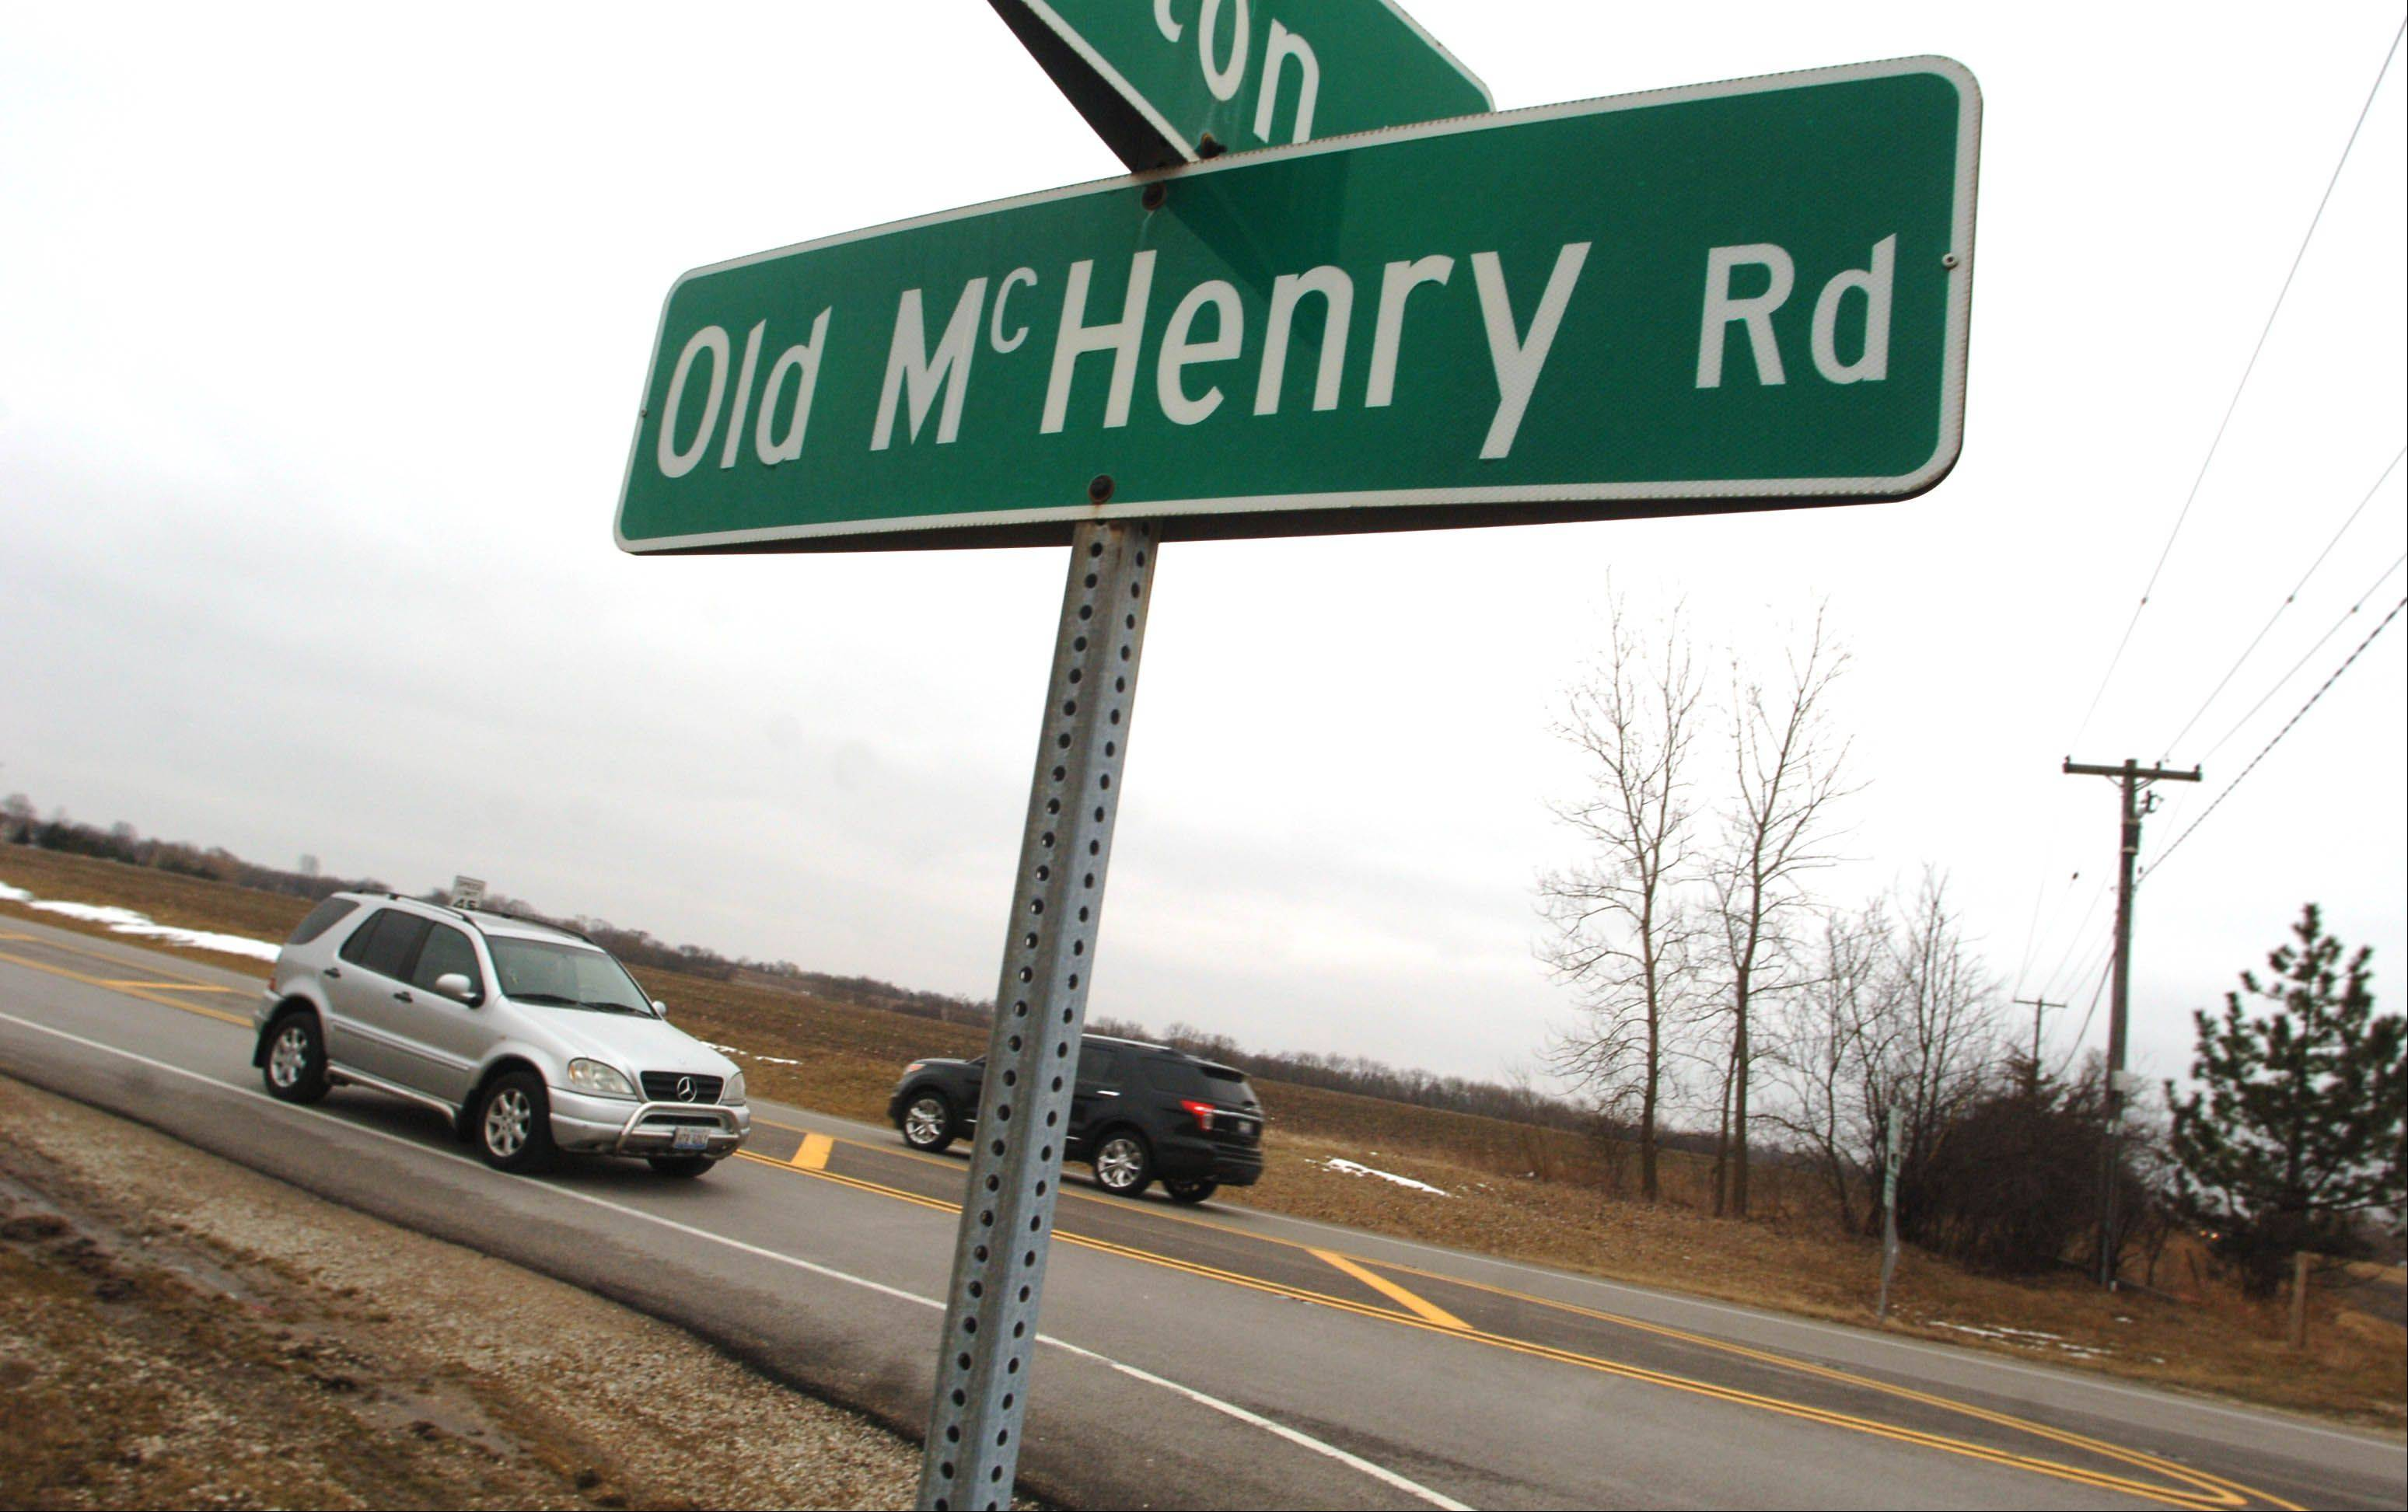 One person at the latest public meeting about plans to develop the Dimucci property dared to speak up in support of it, but all the others who addressed the Lake County regional planning commission railed against the plan, because, for example, they fear increased traffic on Old McHenry and Rand roads.